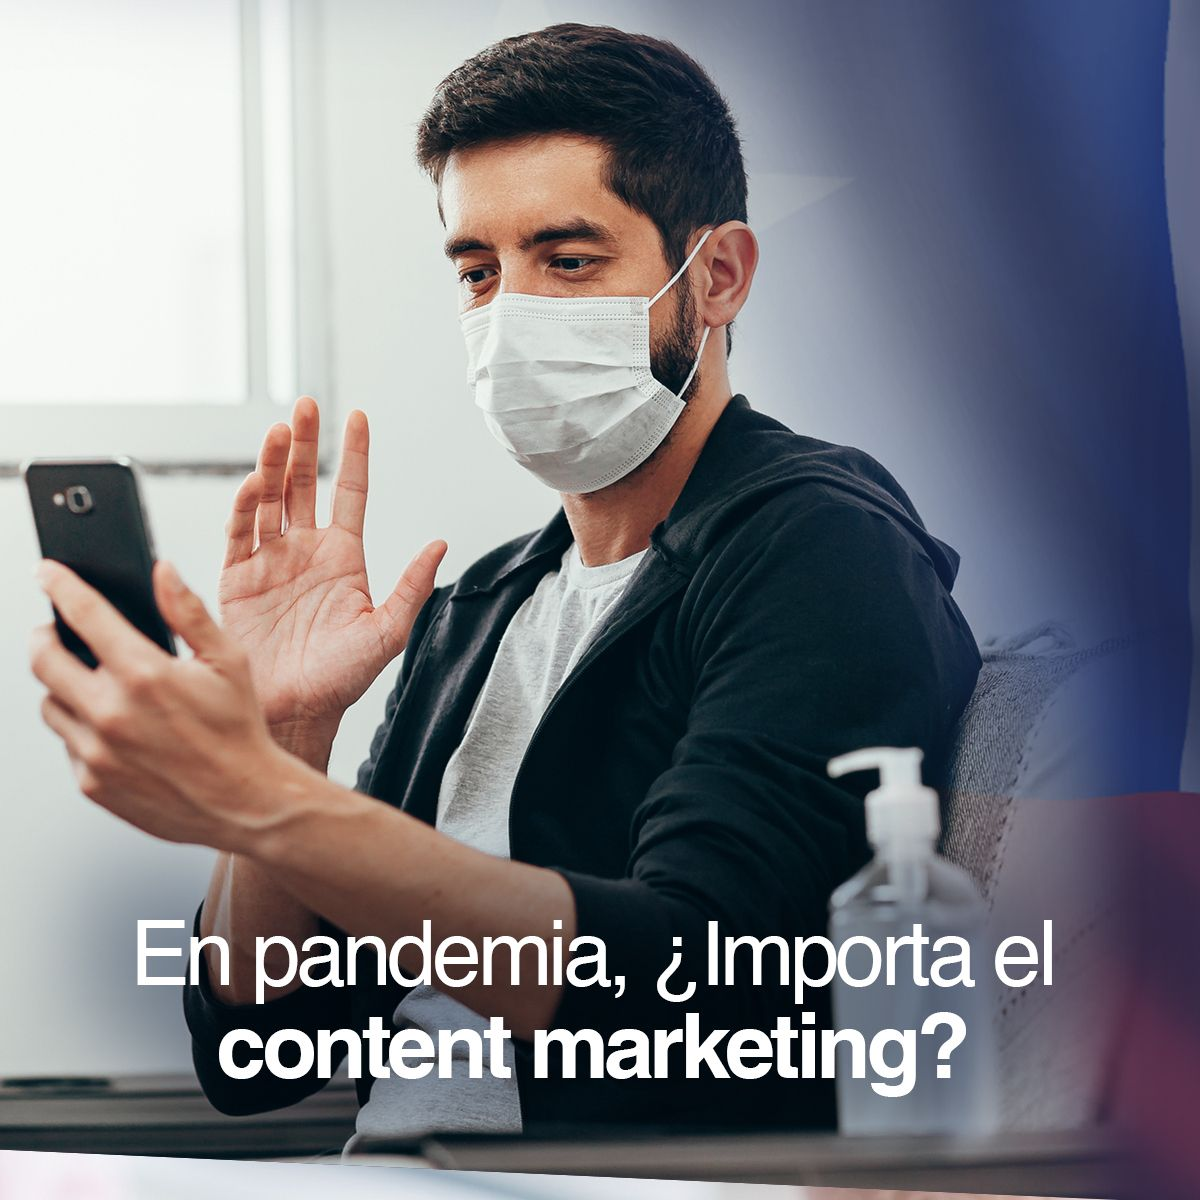 En pandemia, el content marketing en Chile importa mucho